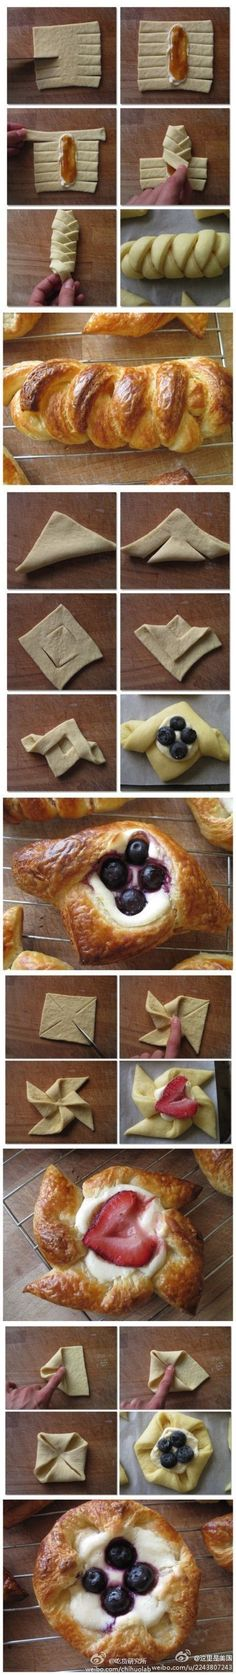 Pastry Folding Hacks | 40 Creative Food Hacks That Will Change The Way You Cook.